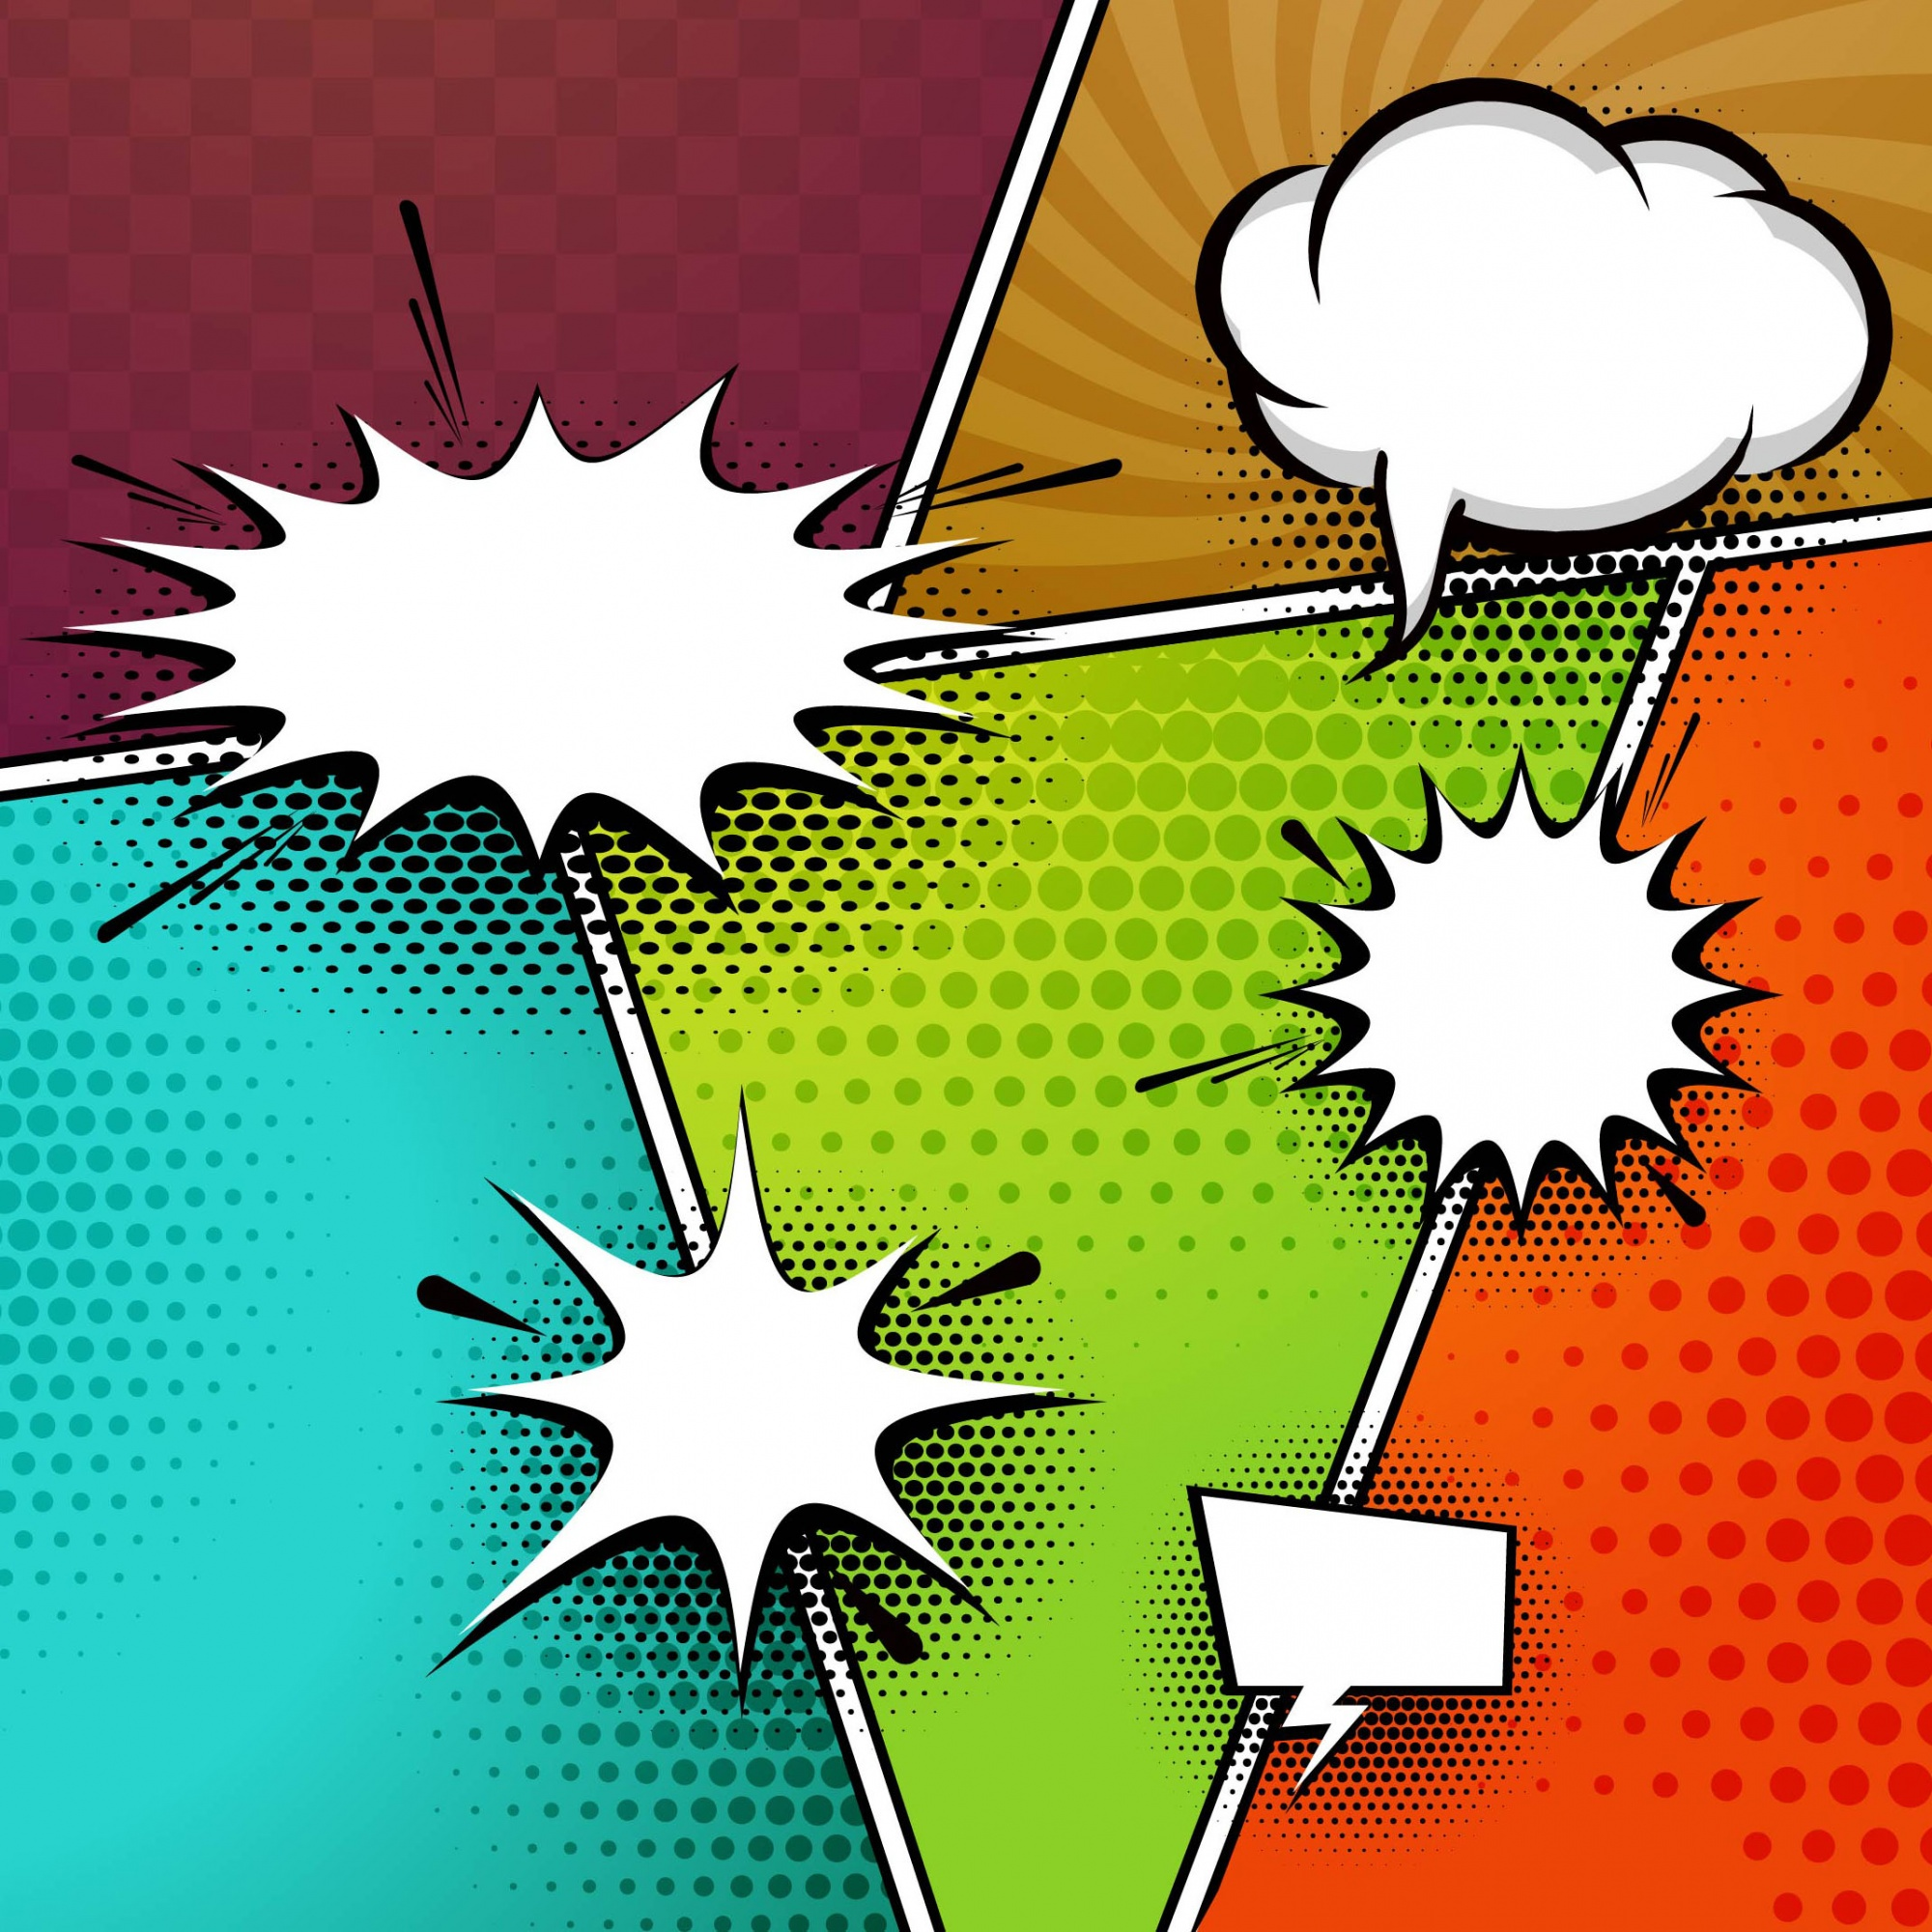 Colorful comic book background with speech bubbles